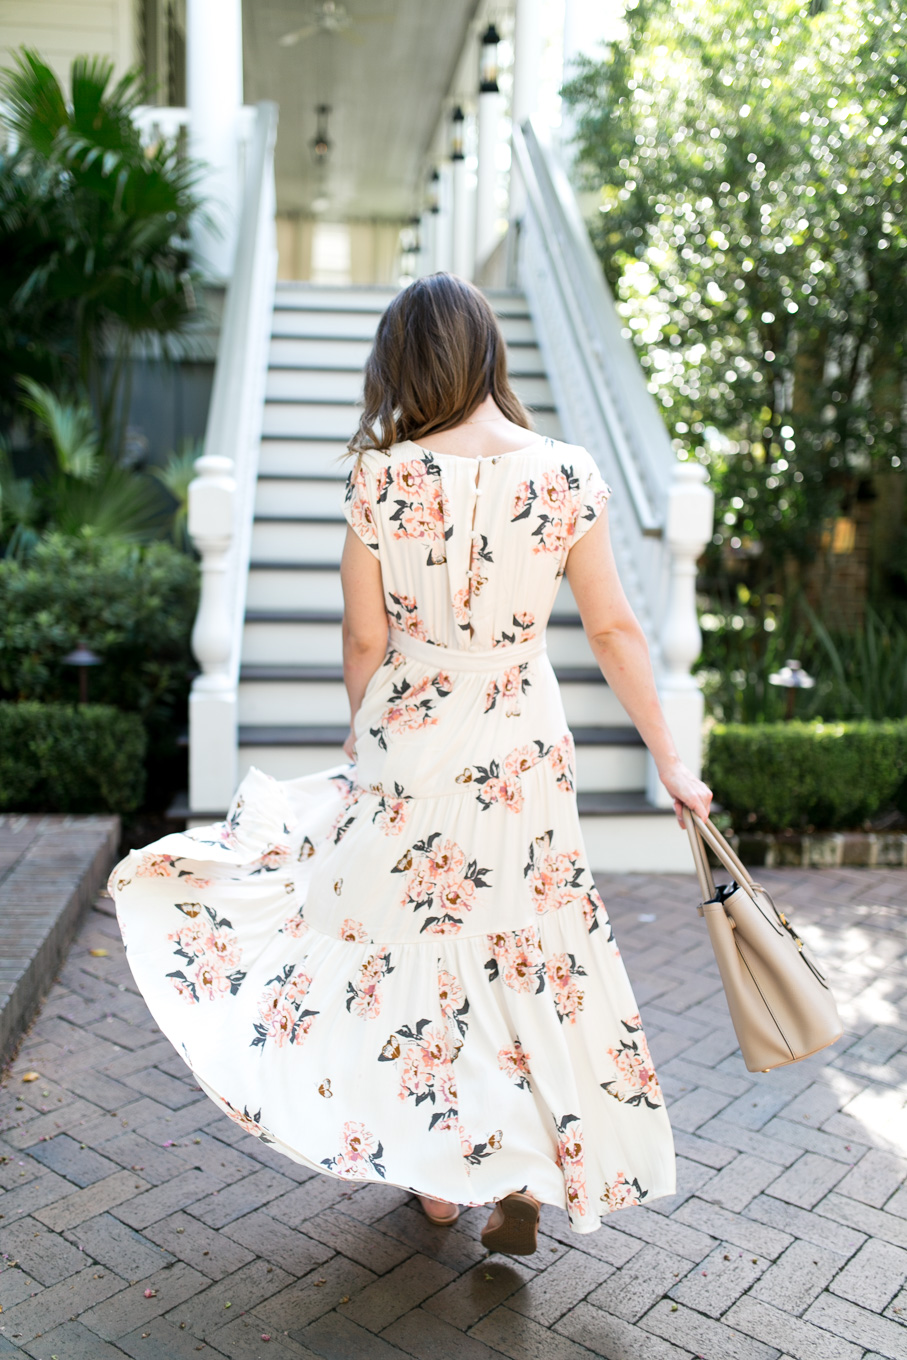 Daryl-Ann Denner wearing the Free People All I got floral Maxi Dress from Nordstrom with Tory Burch Miller Flip Flops in makeup at the Zero George Hotel in Downtown Charleston, SC.